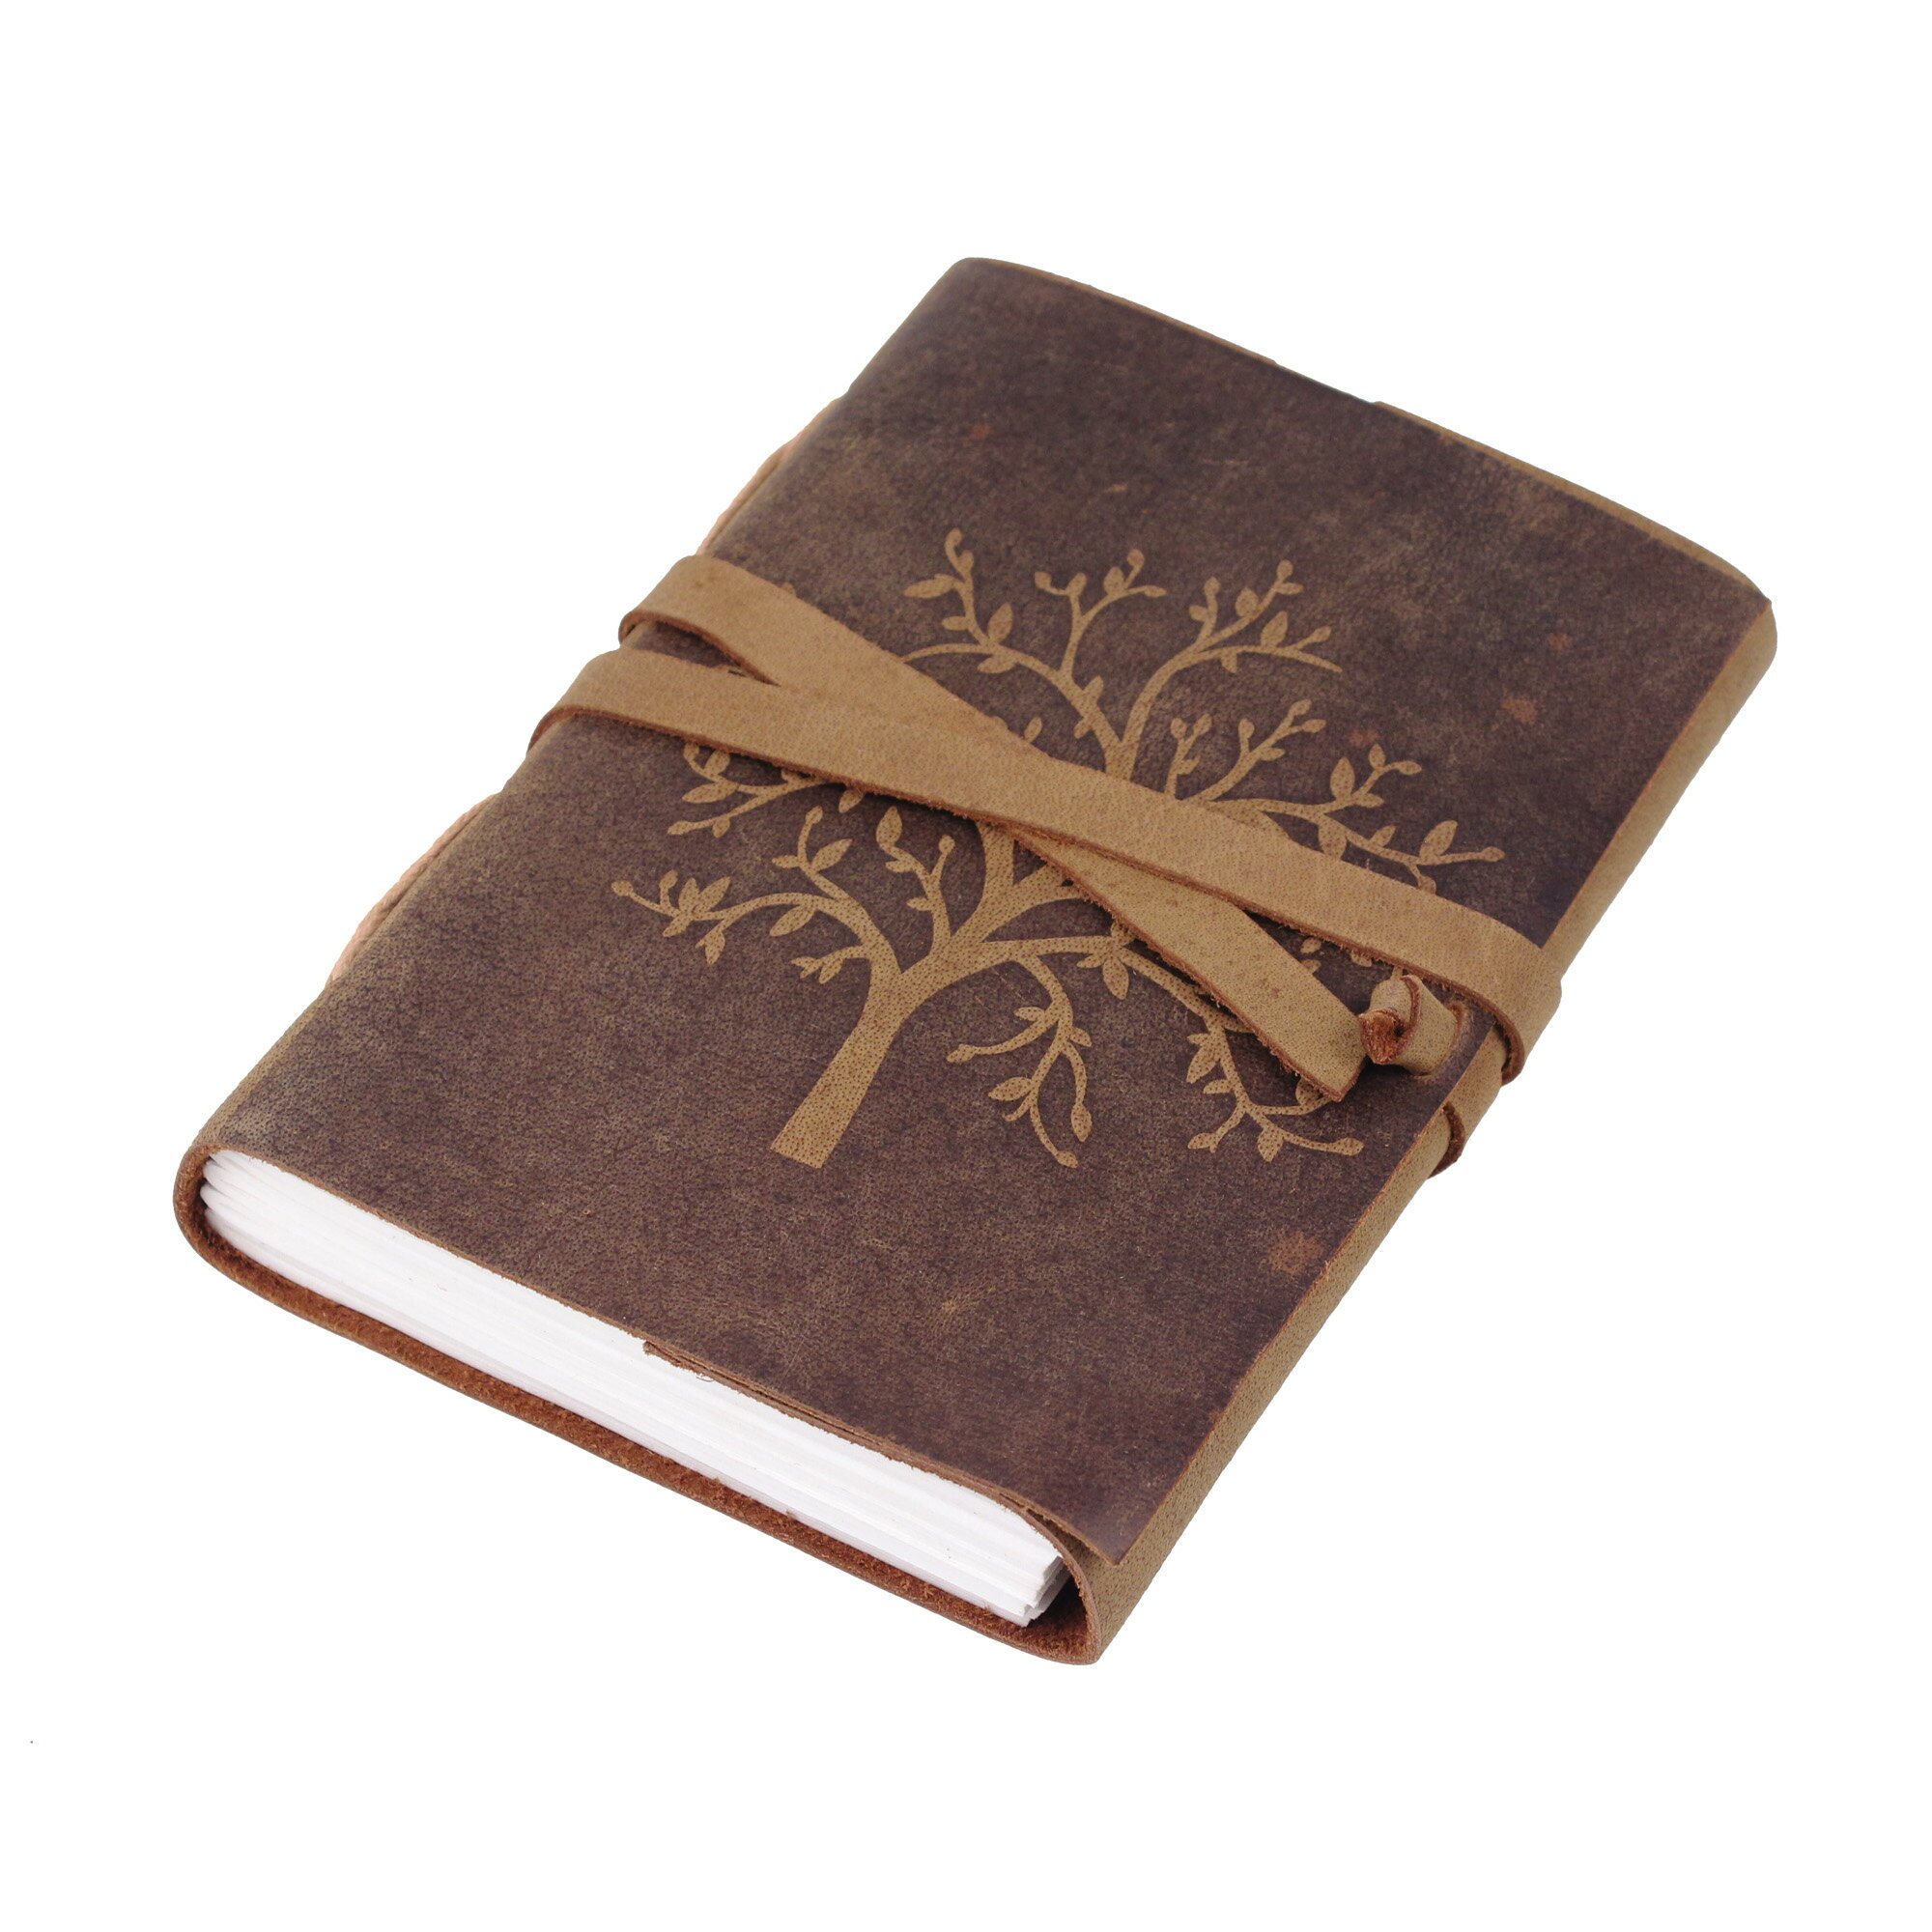 Leather Journal Diary Embossed Large Tree Notebook for Writing Leather Diary Handmade Leather Journal Gbag T